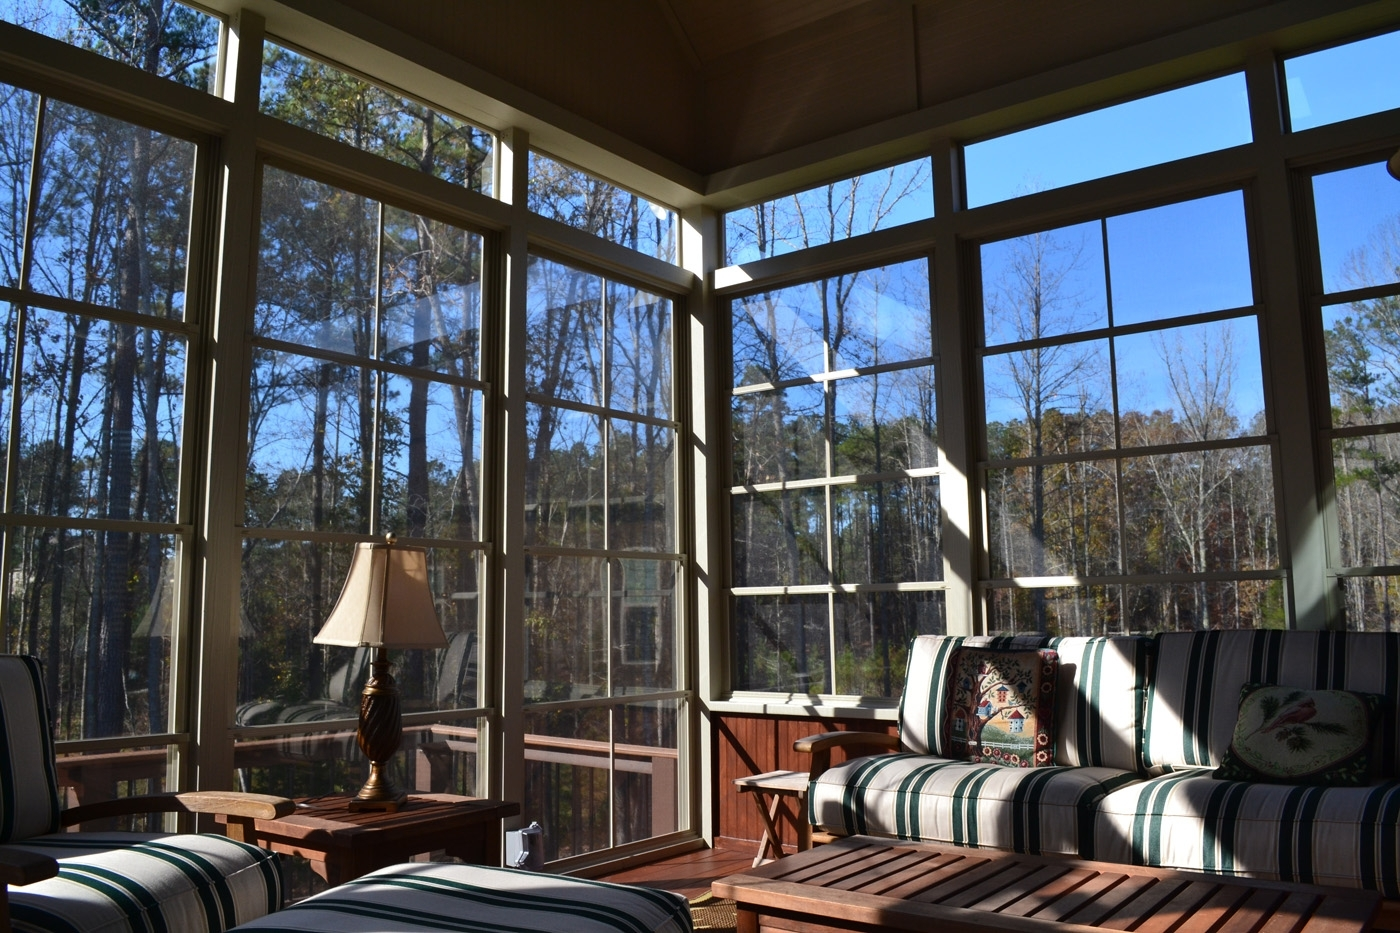 How To Winterize Acrylic Panels For Screened Porch